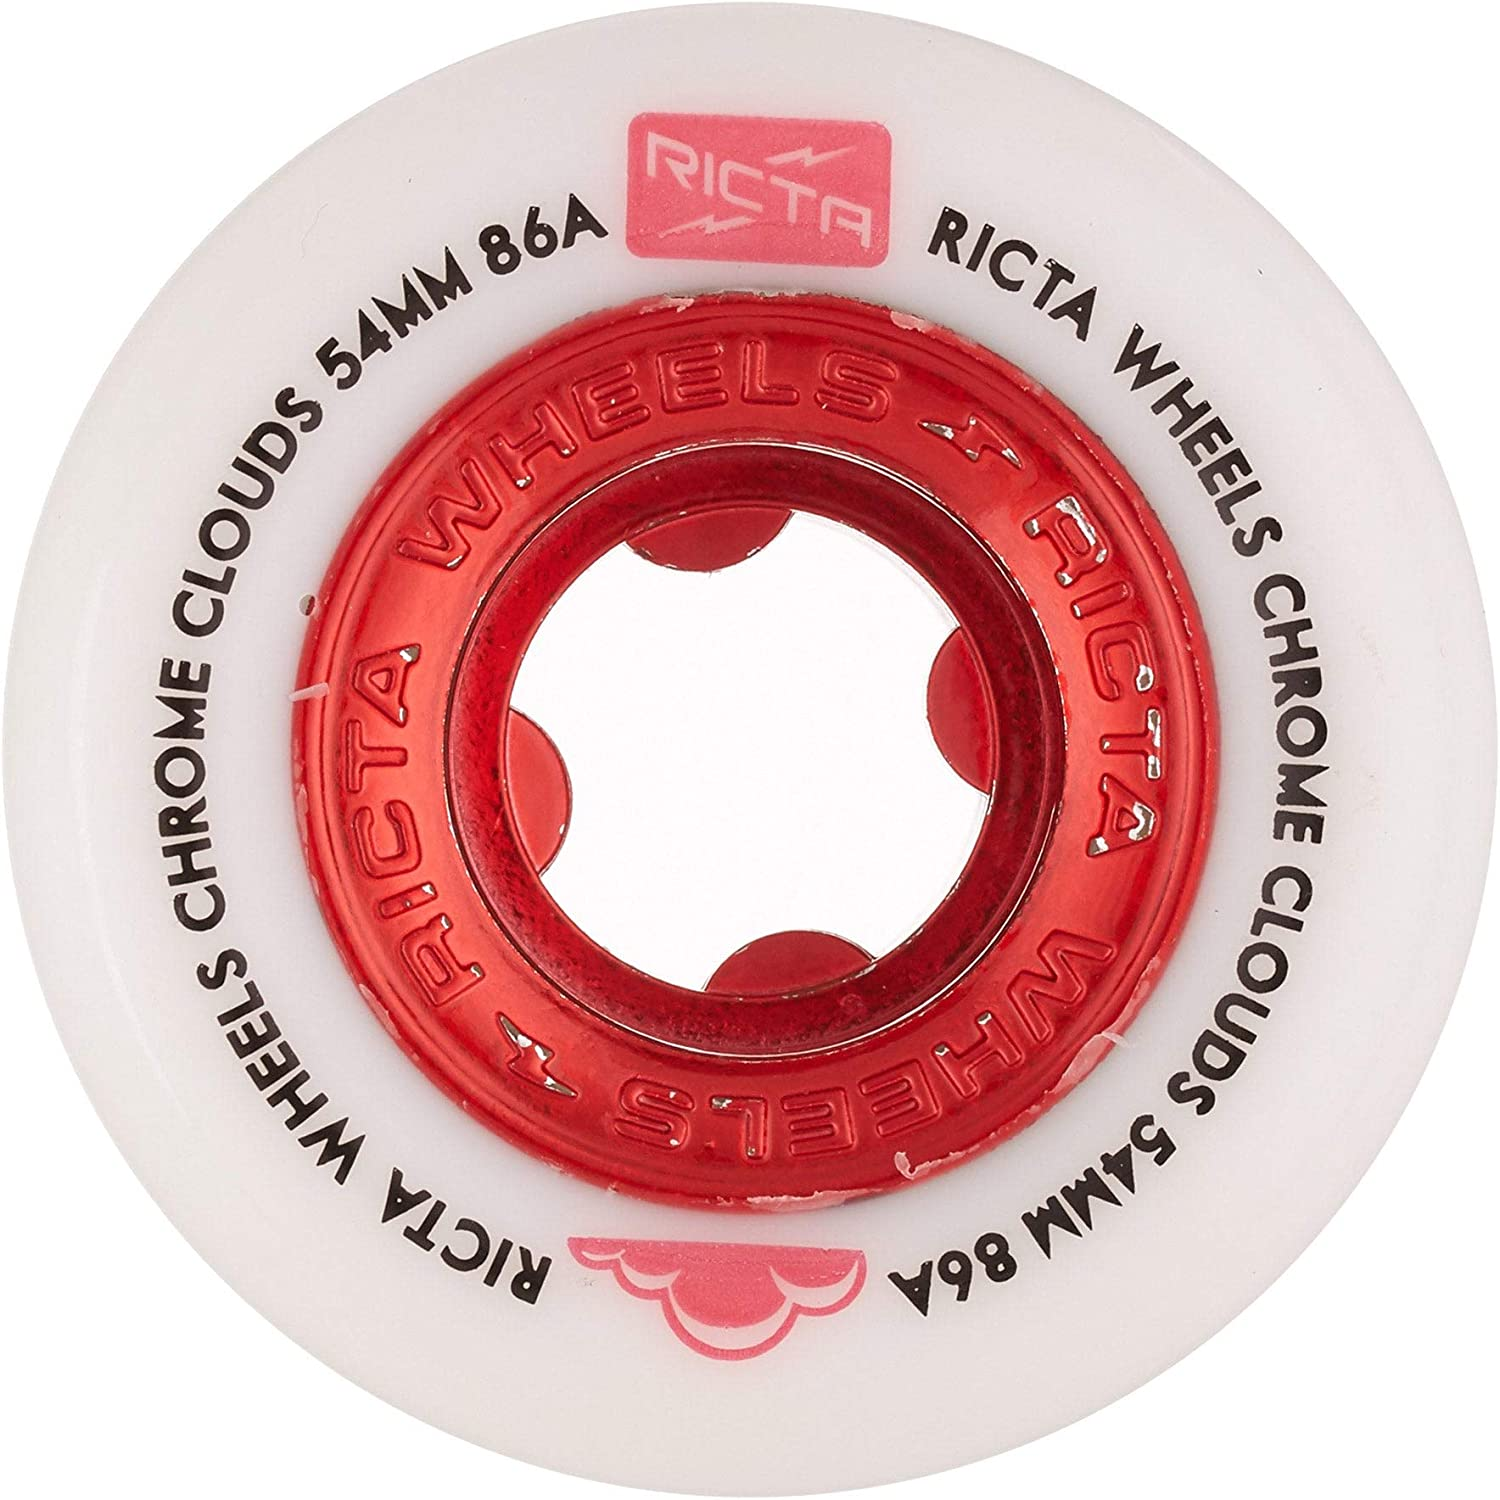 Ricta Chrome Clouds Skateboard Wheels